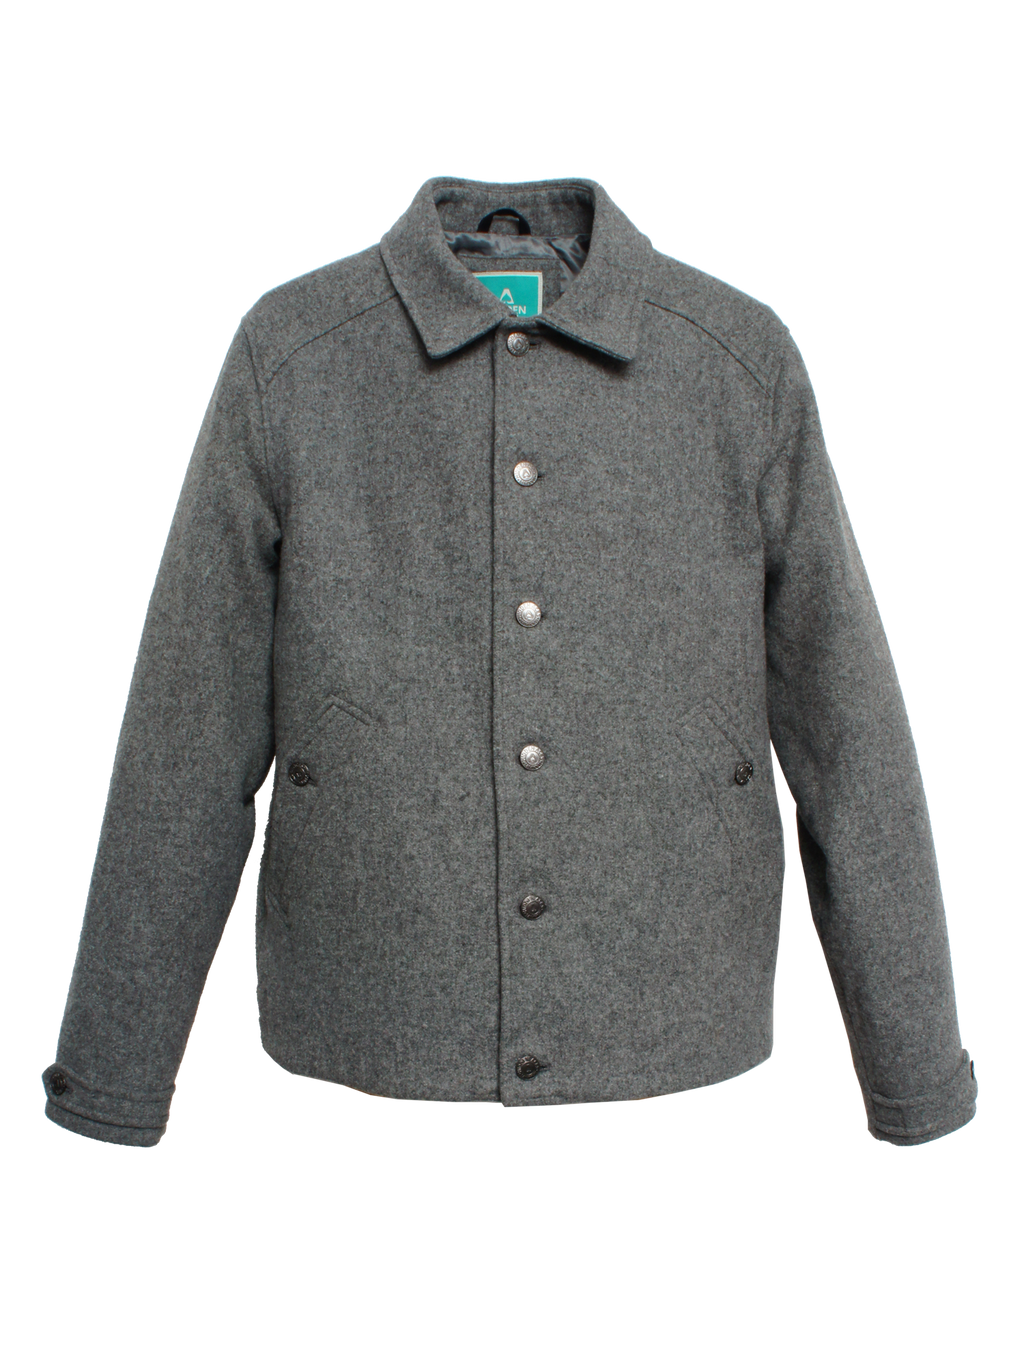 Mens Wool Jacket K5101 CERBERUS